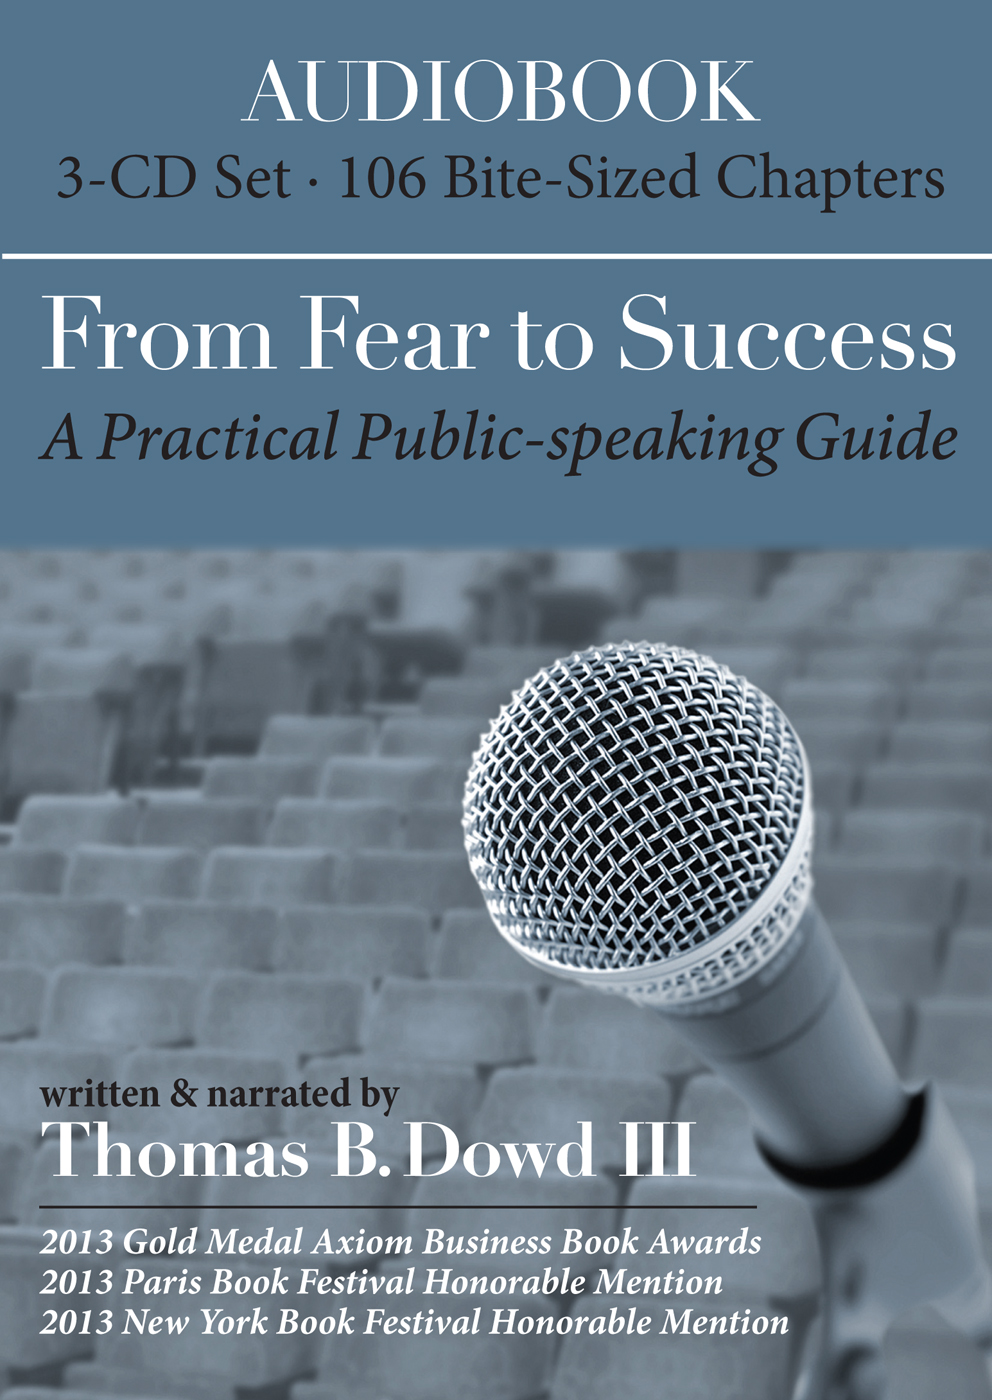 Fear to Success Audio Book Cover_Thomas Dowd 082613 Regular Dimensions